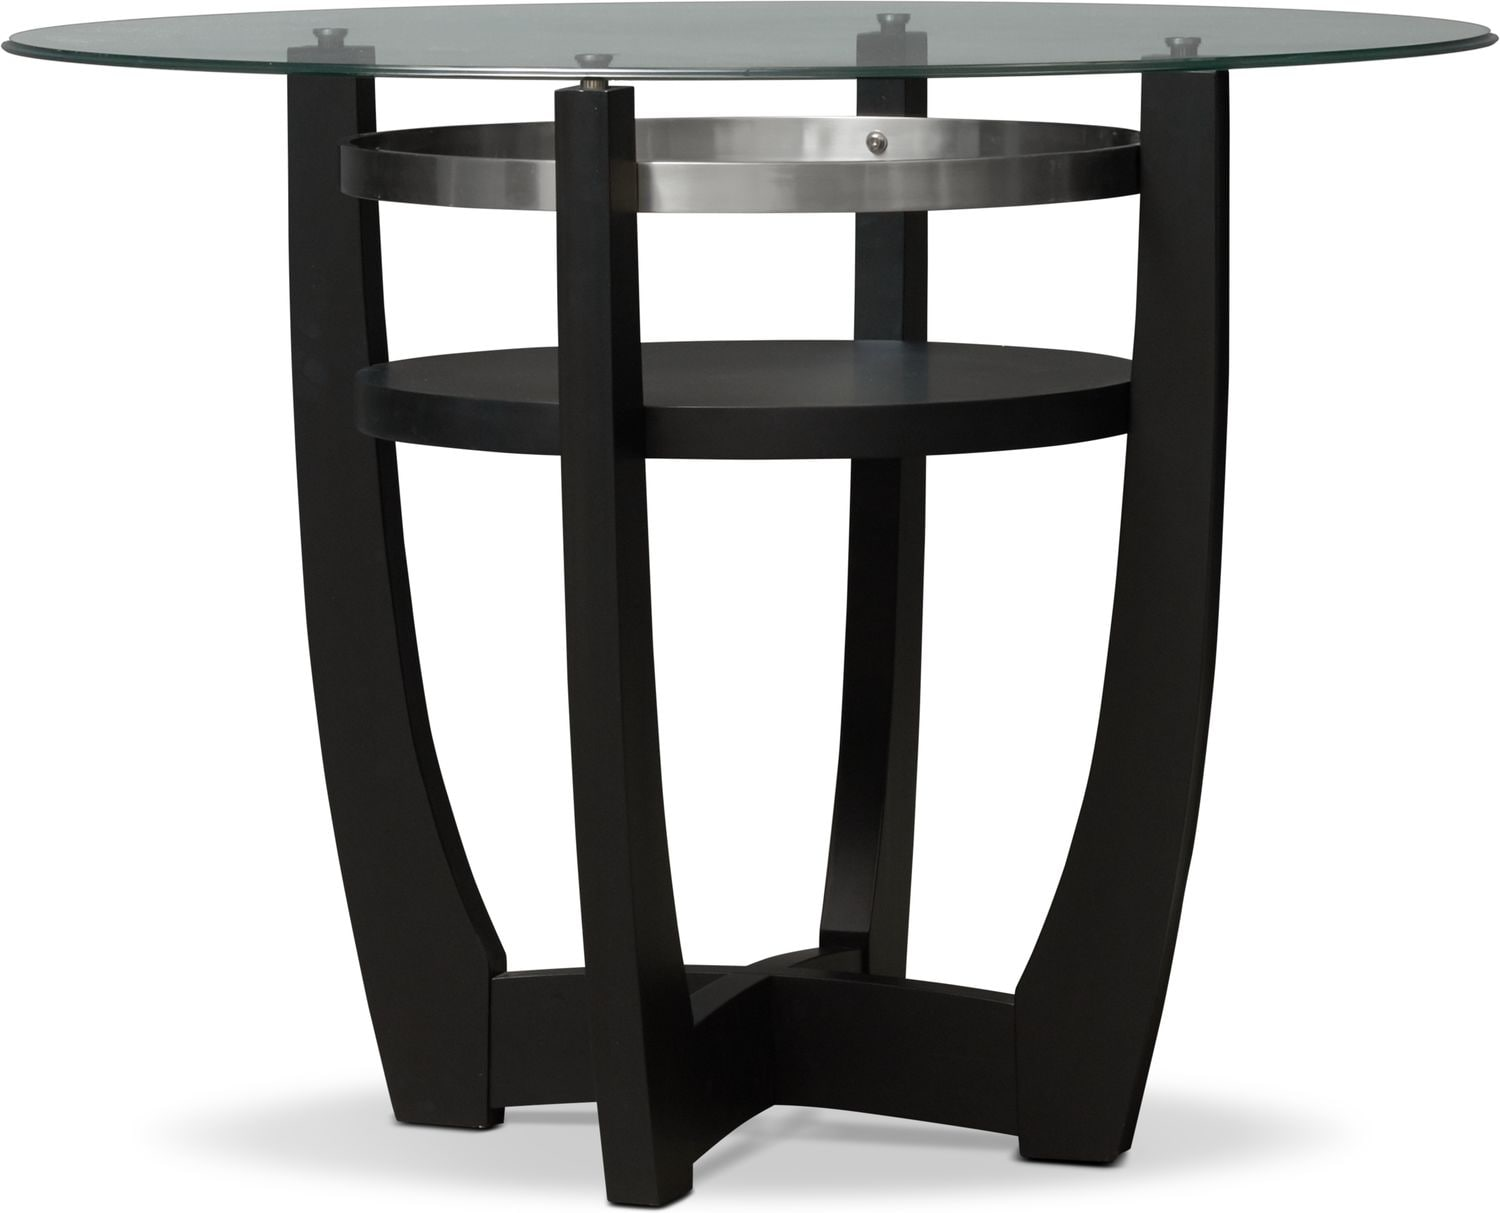 Dining Room Furniture - Lennox Counter-Height Dining Table